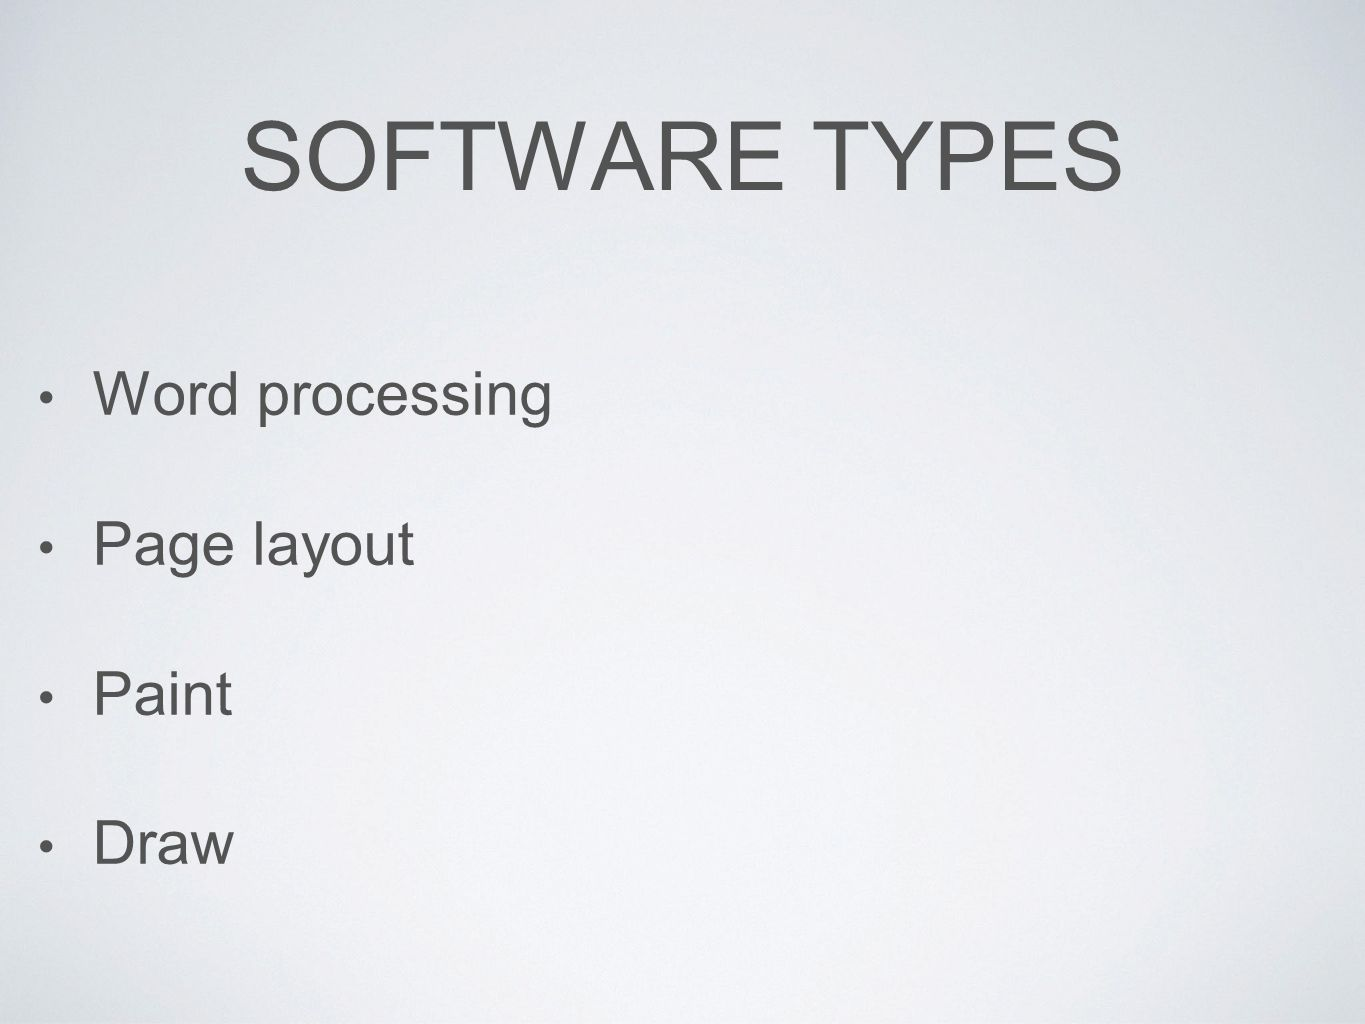 SOFTWARE TYPES Word processing Page layout Paint Draw